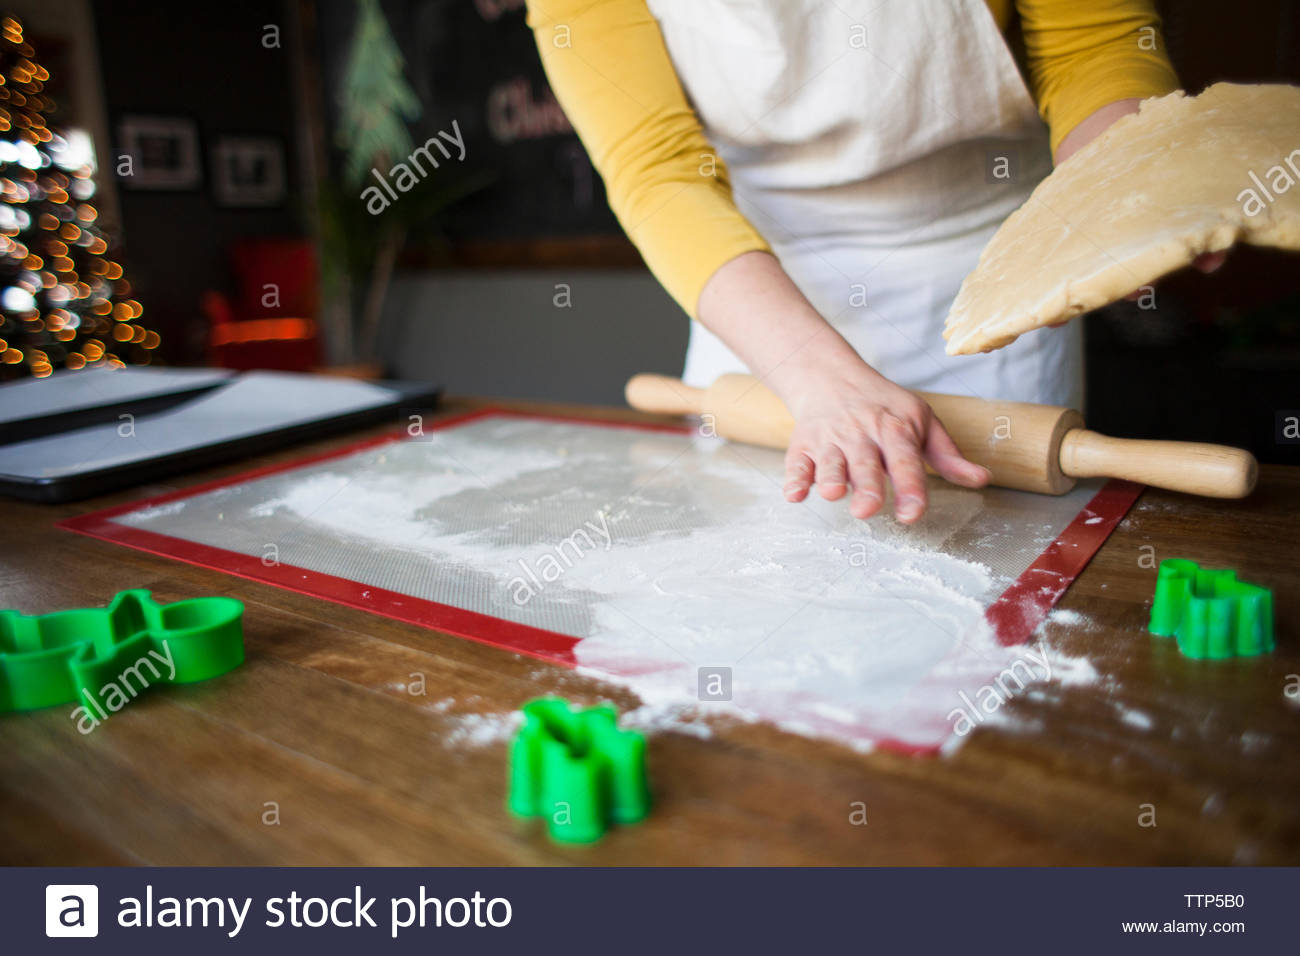 Midsection of woman making dough on kitchen counter at home - Stock Image